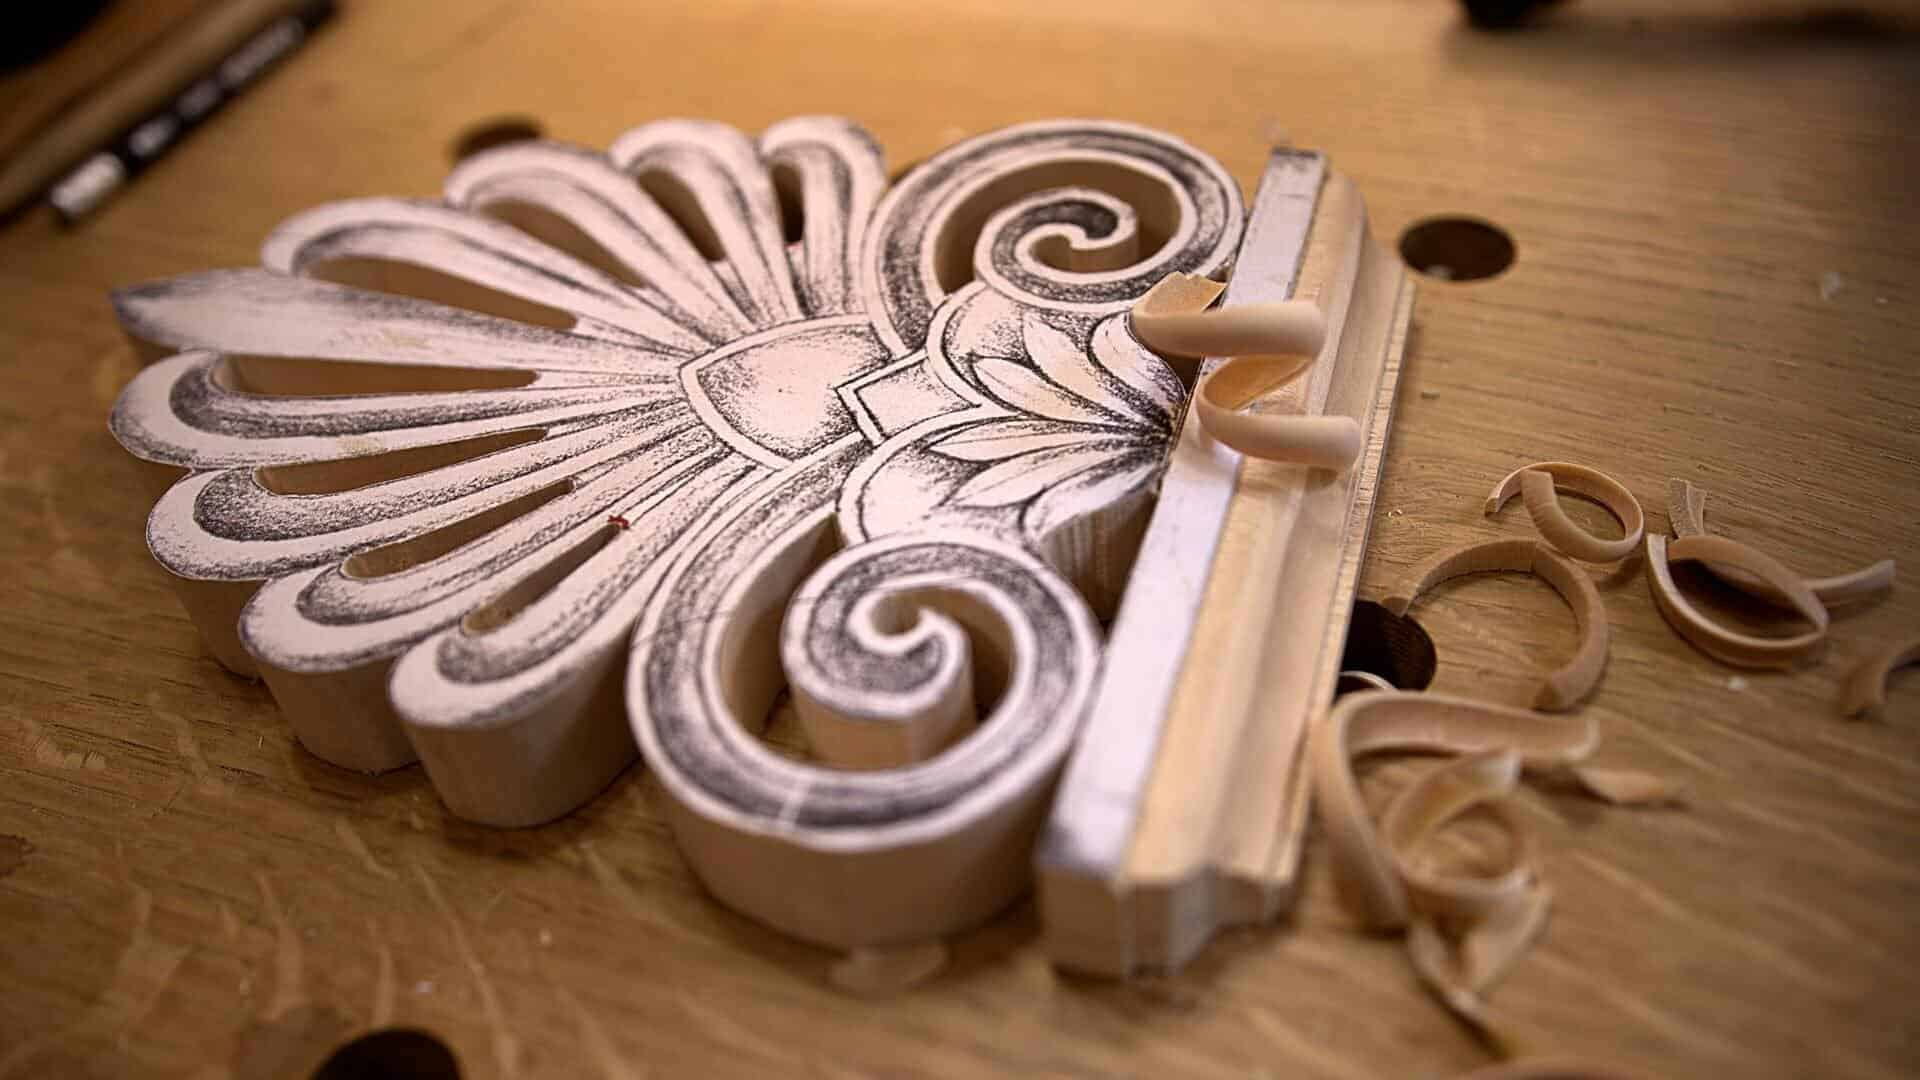 Carving Greek Style Acroterion School of Woodcarving http://schoolofwoodcarving.com/ #woodcarving #woodworking #architecturalcarving #furniturecarving @grabovetskiy